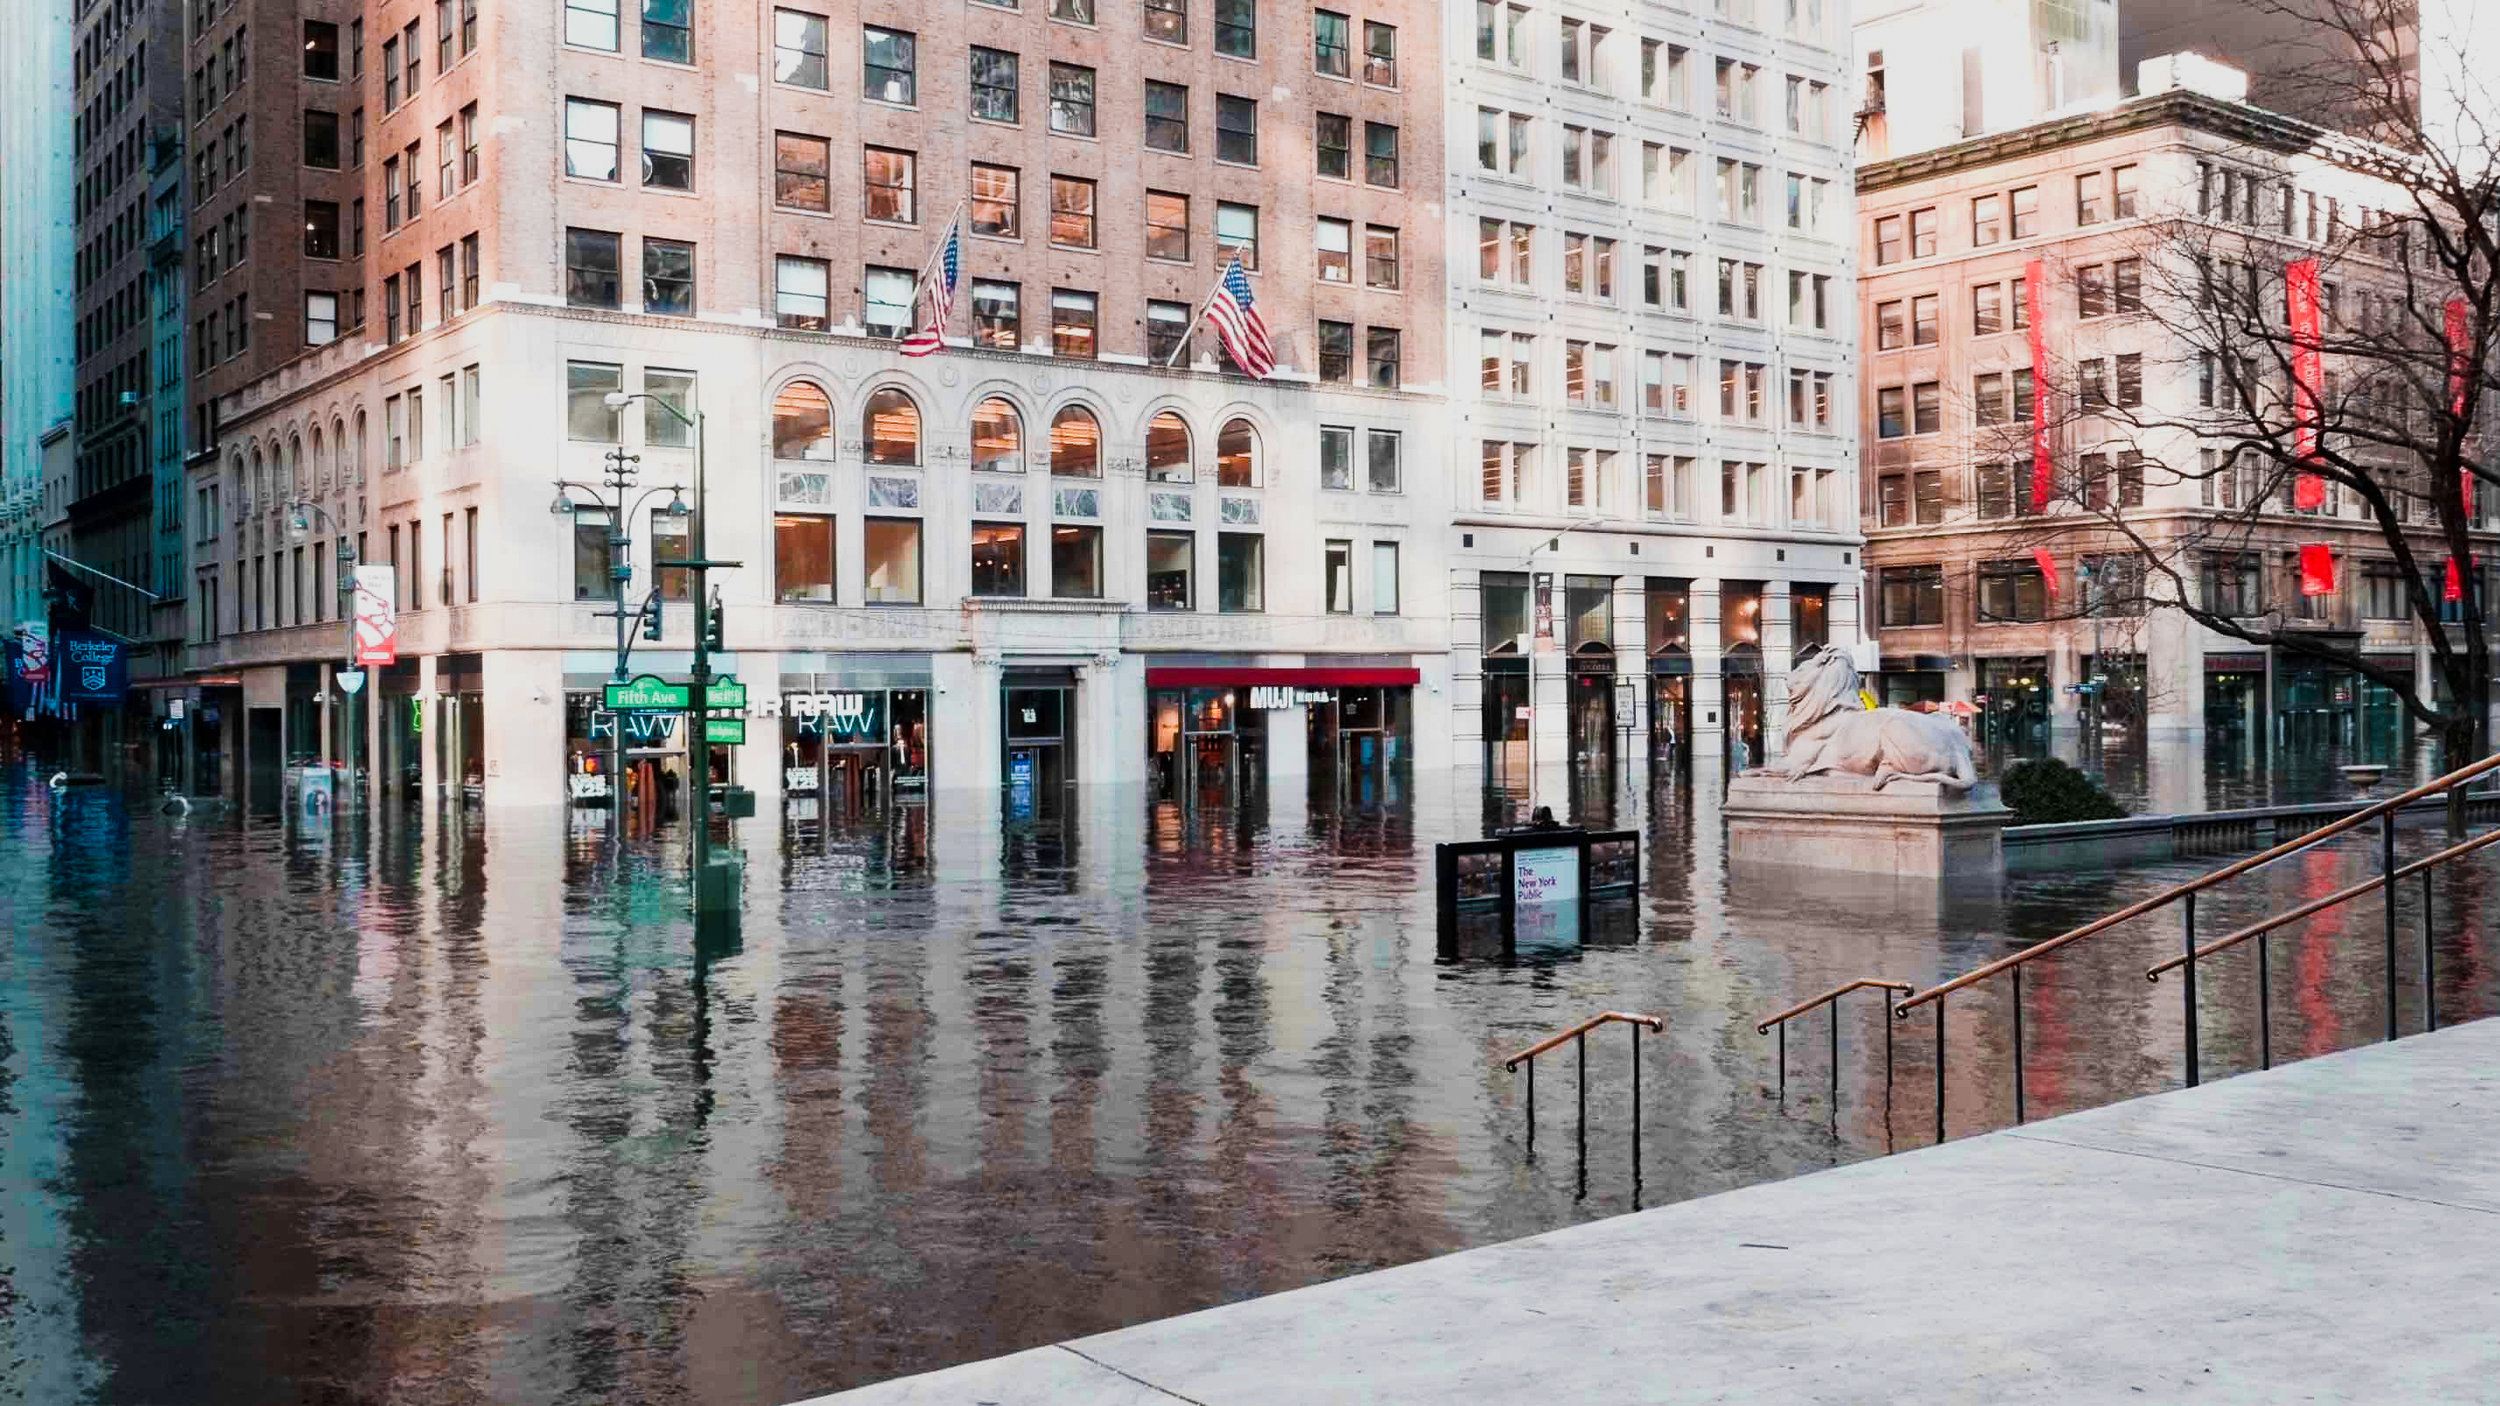 Can you imagine Fifth Avenue underwater? This is how it would look like from the New York Public Library stairs